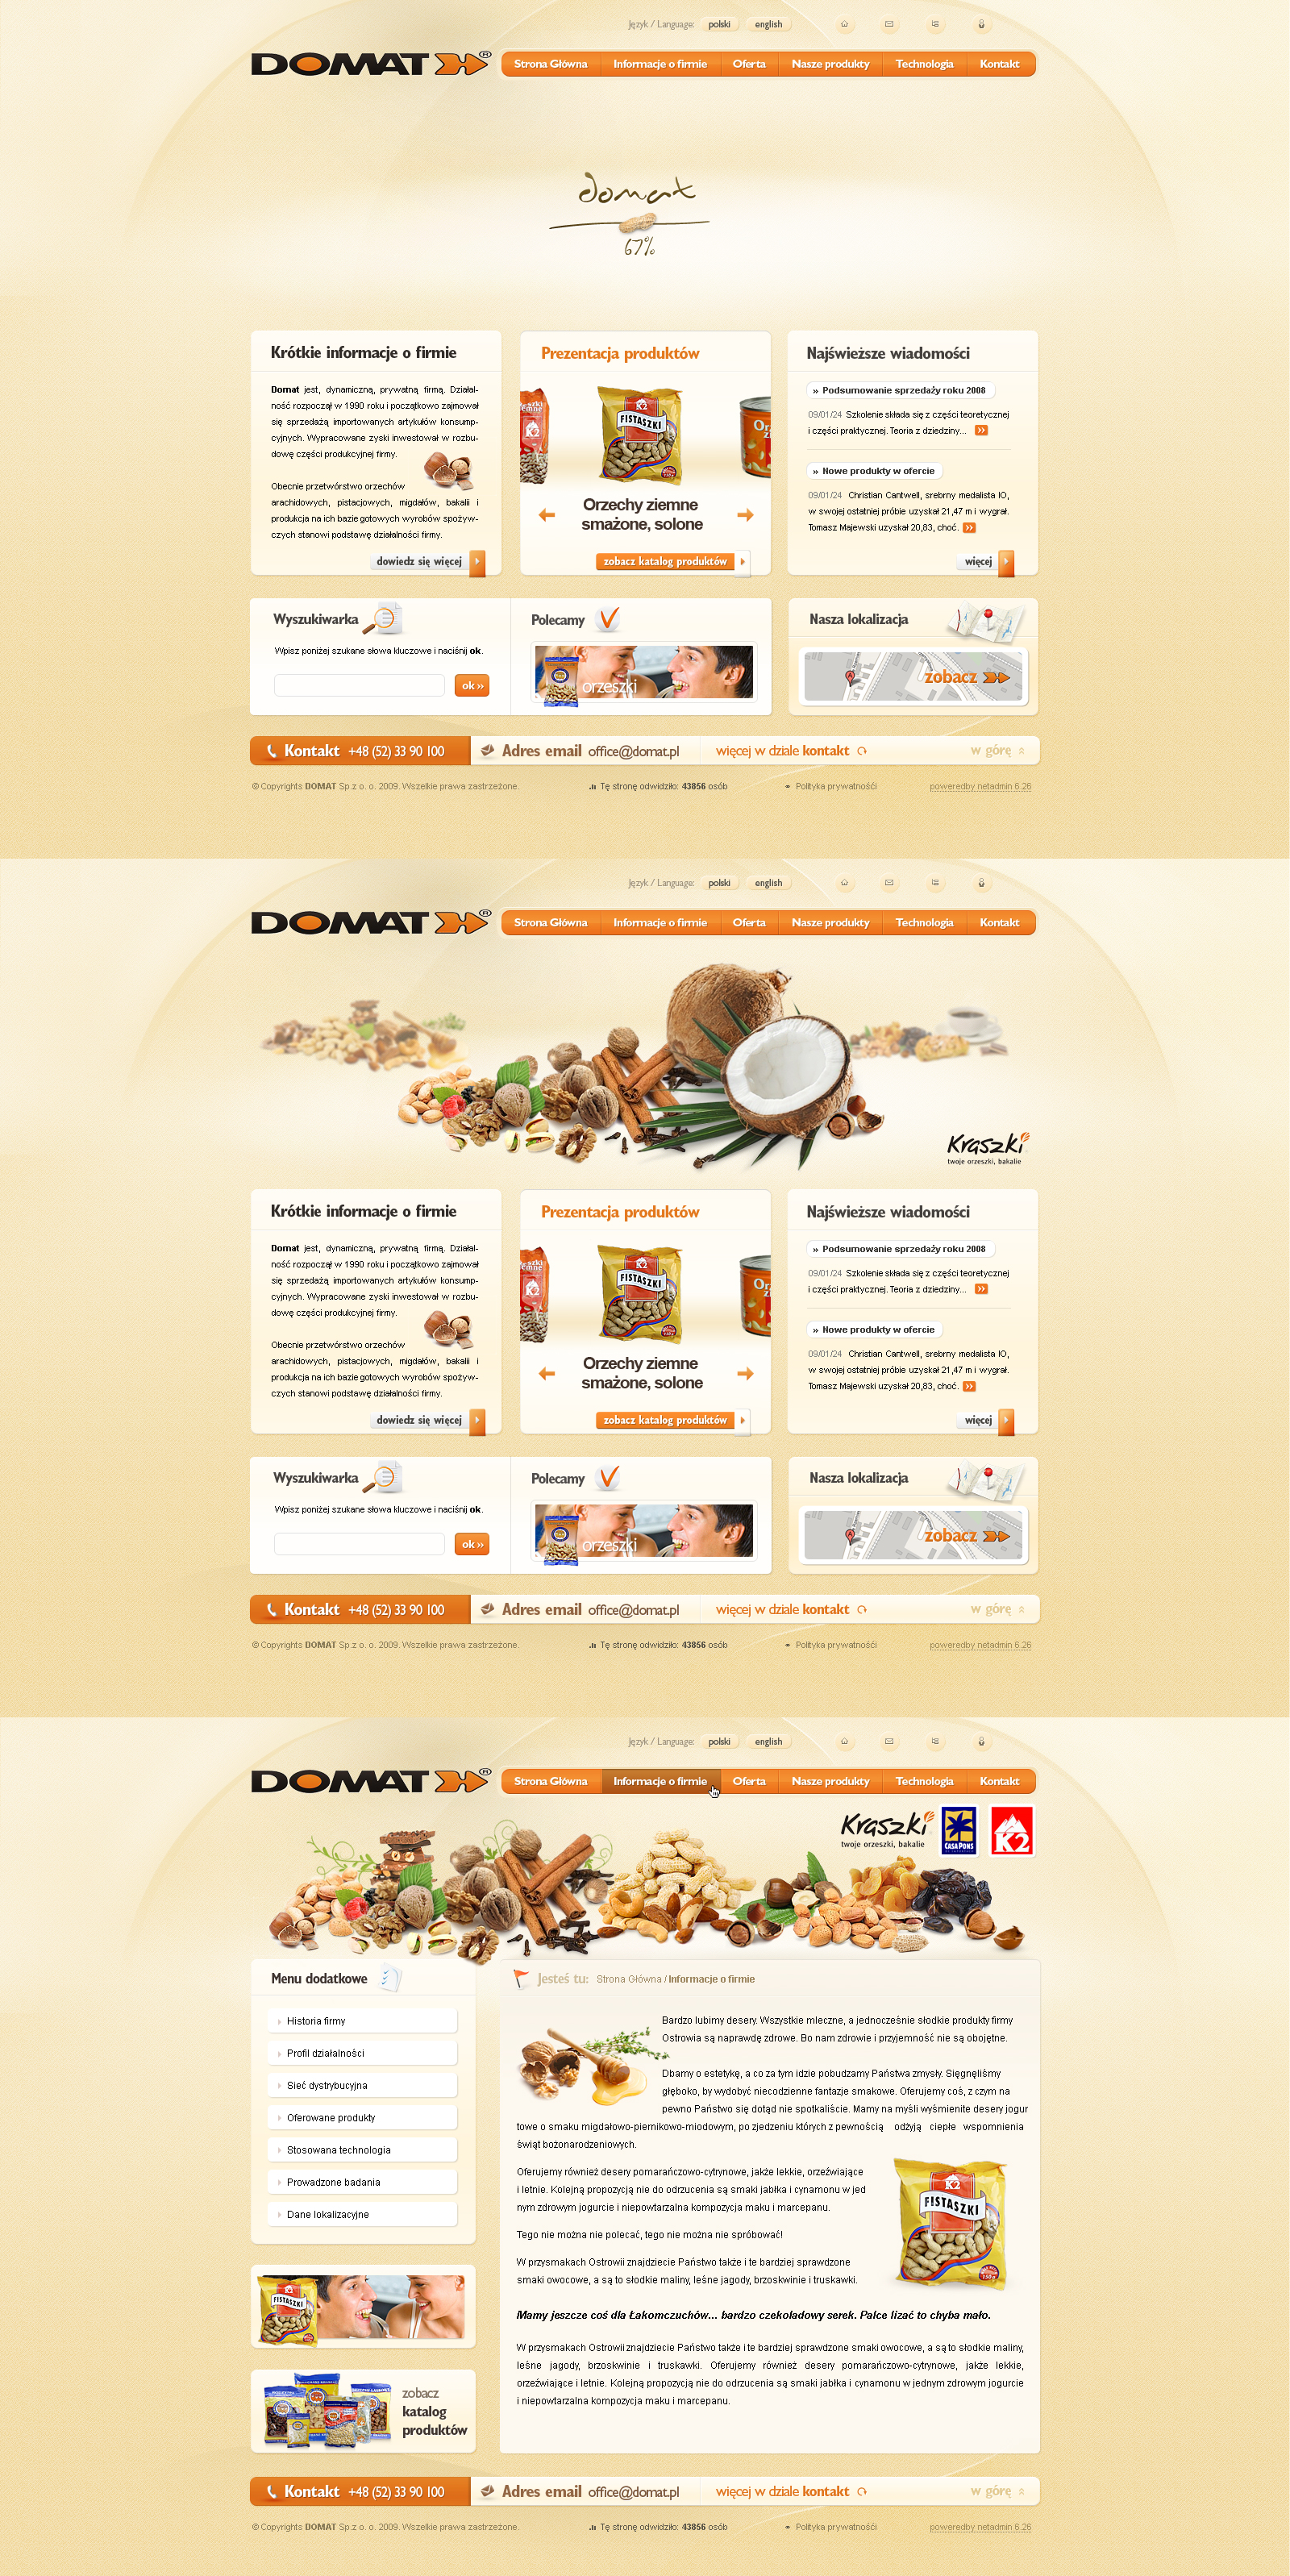 Domat producent orzeszkow by rzmota